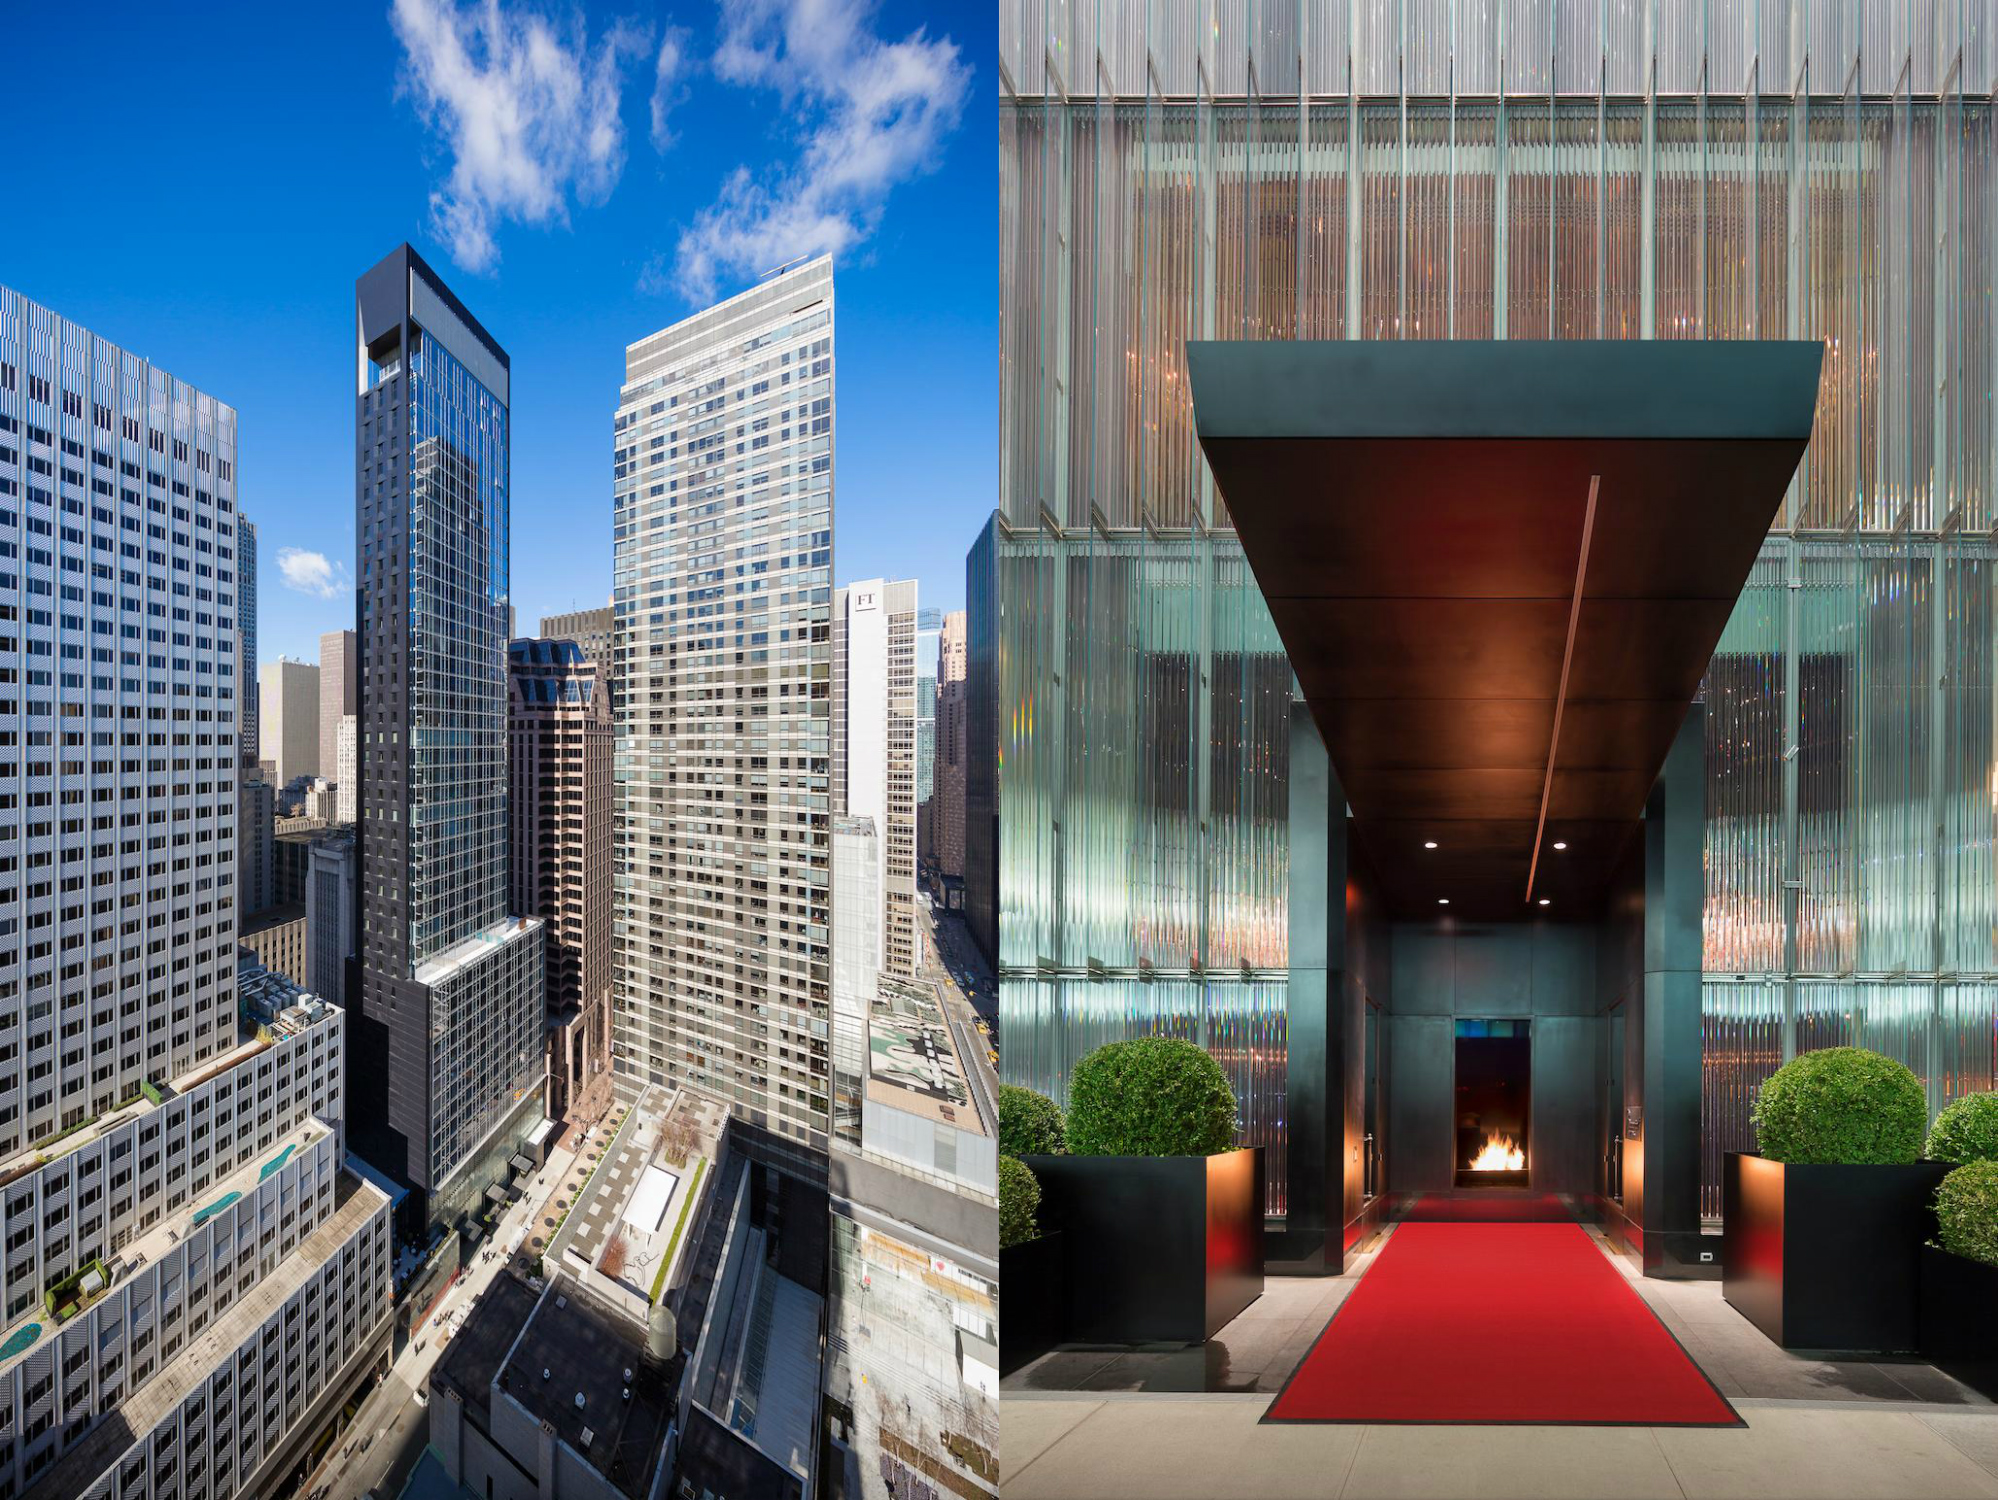 50 Story Baccarat Hotel Amp Residences At 20 West 53rd